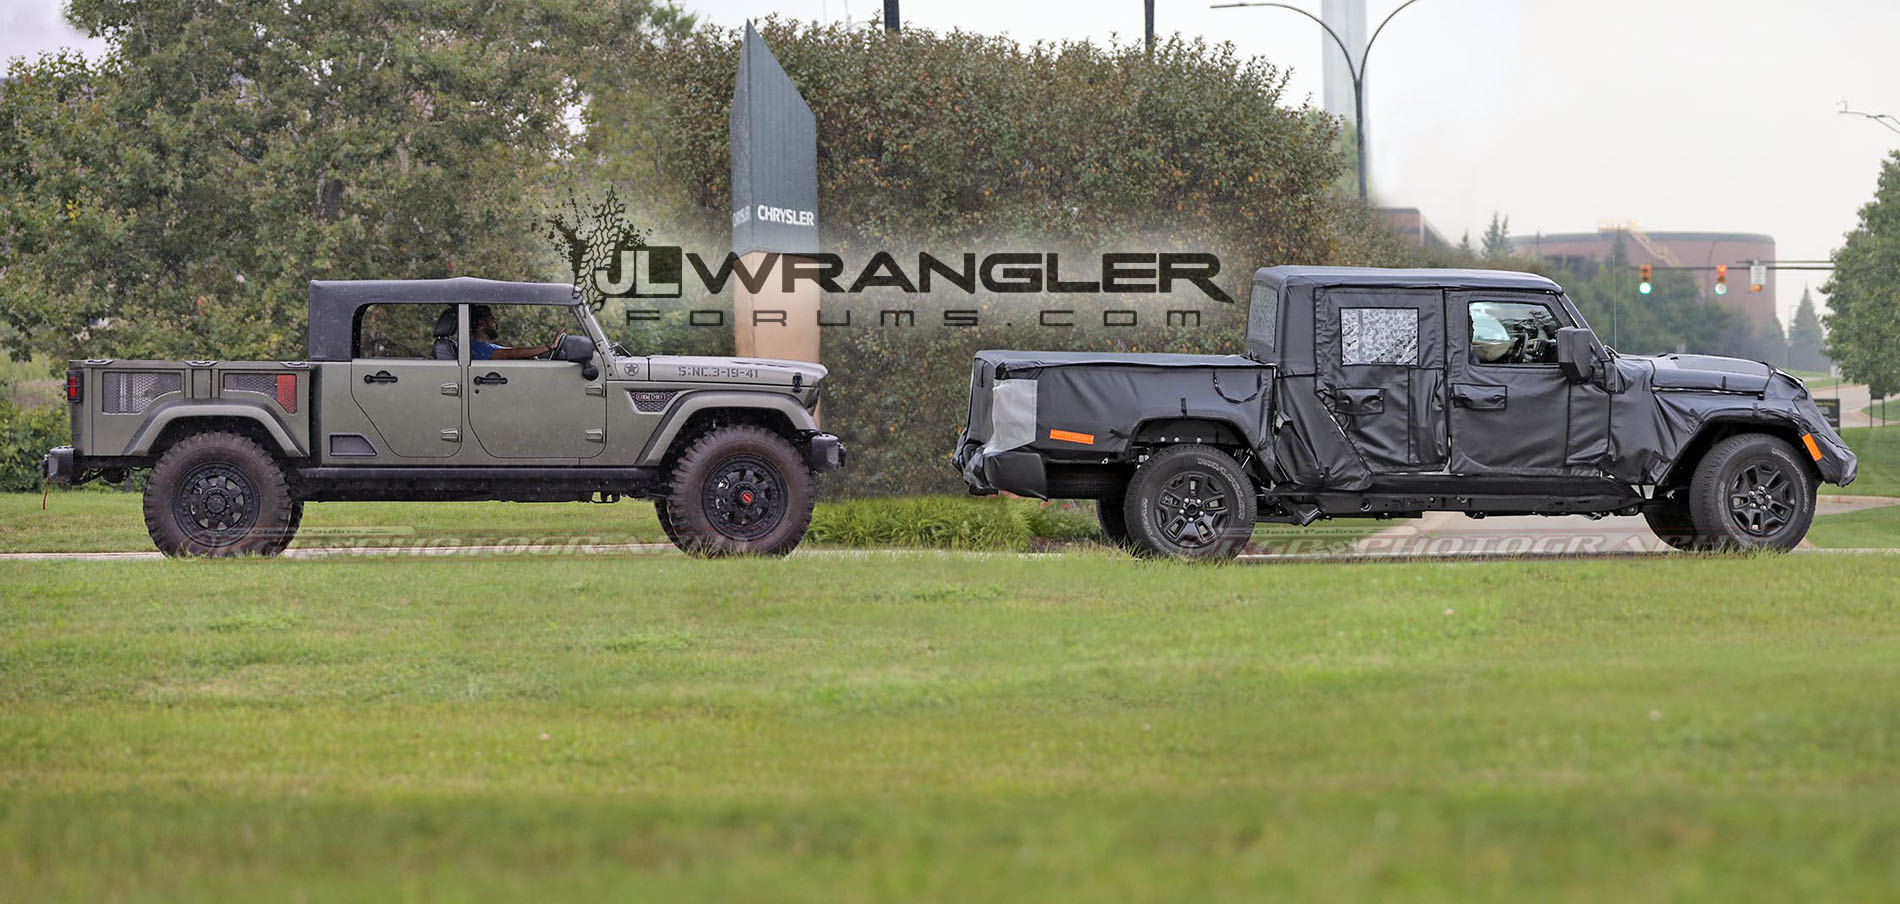 SPIED: [video]: Jeep Scrambler – See the Truck in Action ...